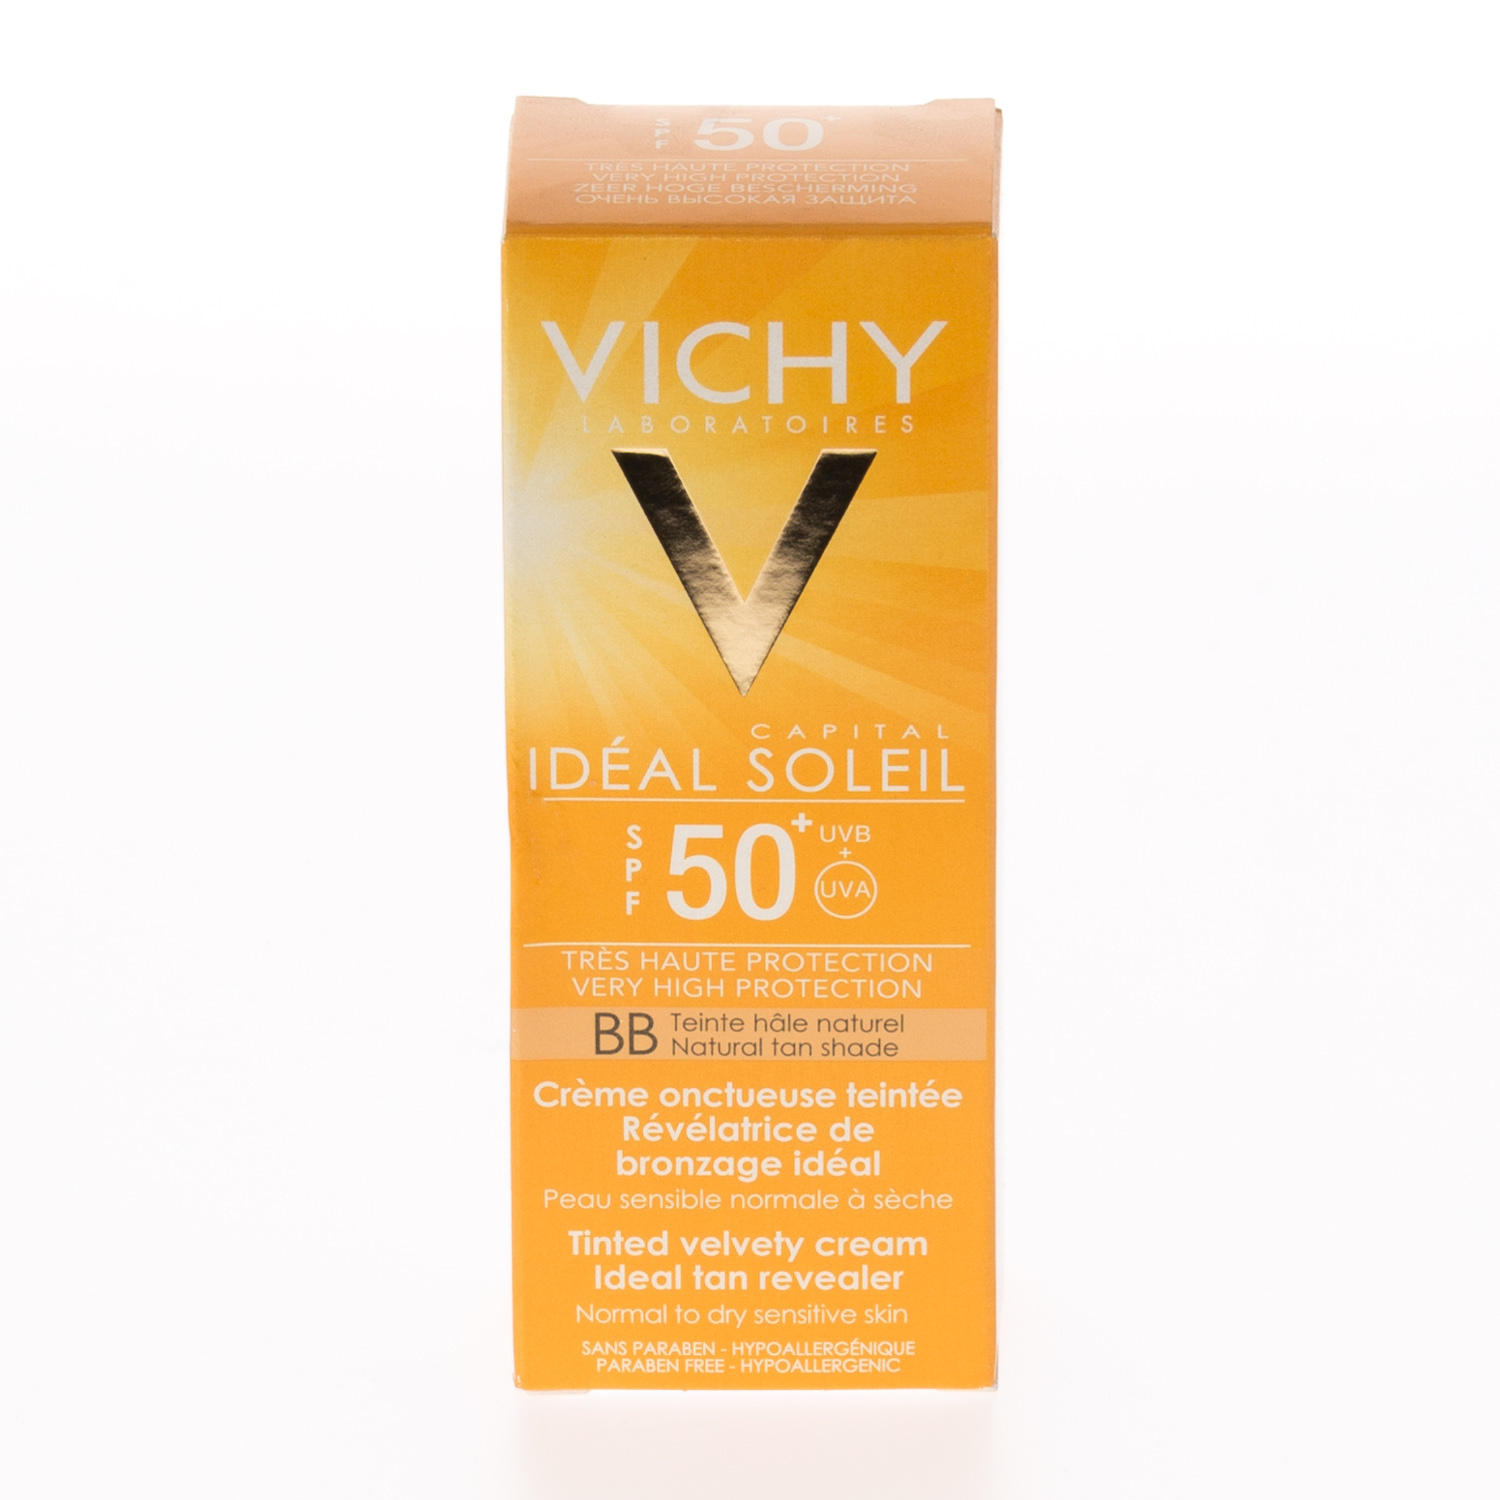 Vichy Ideal Soleil Velvety BB Cream SPF50